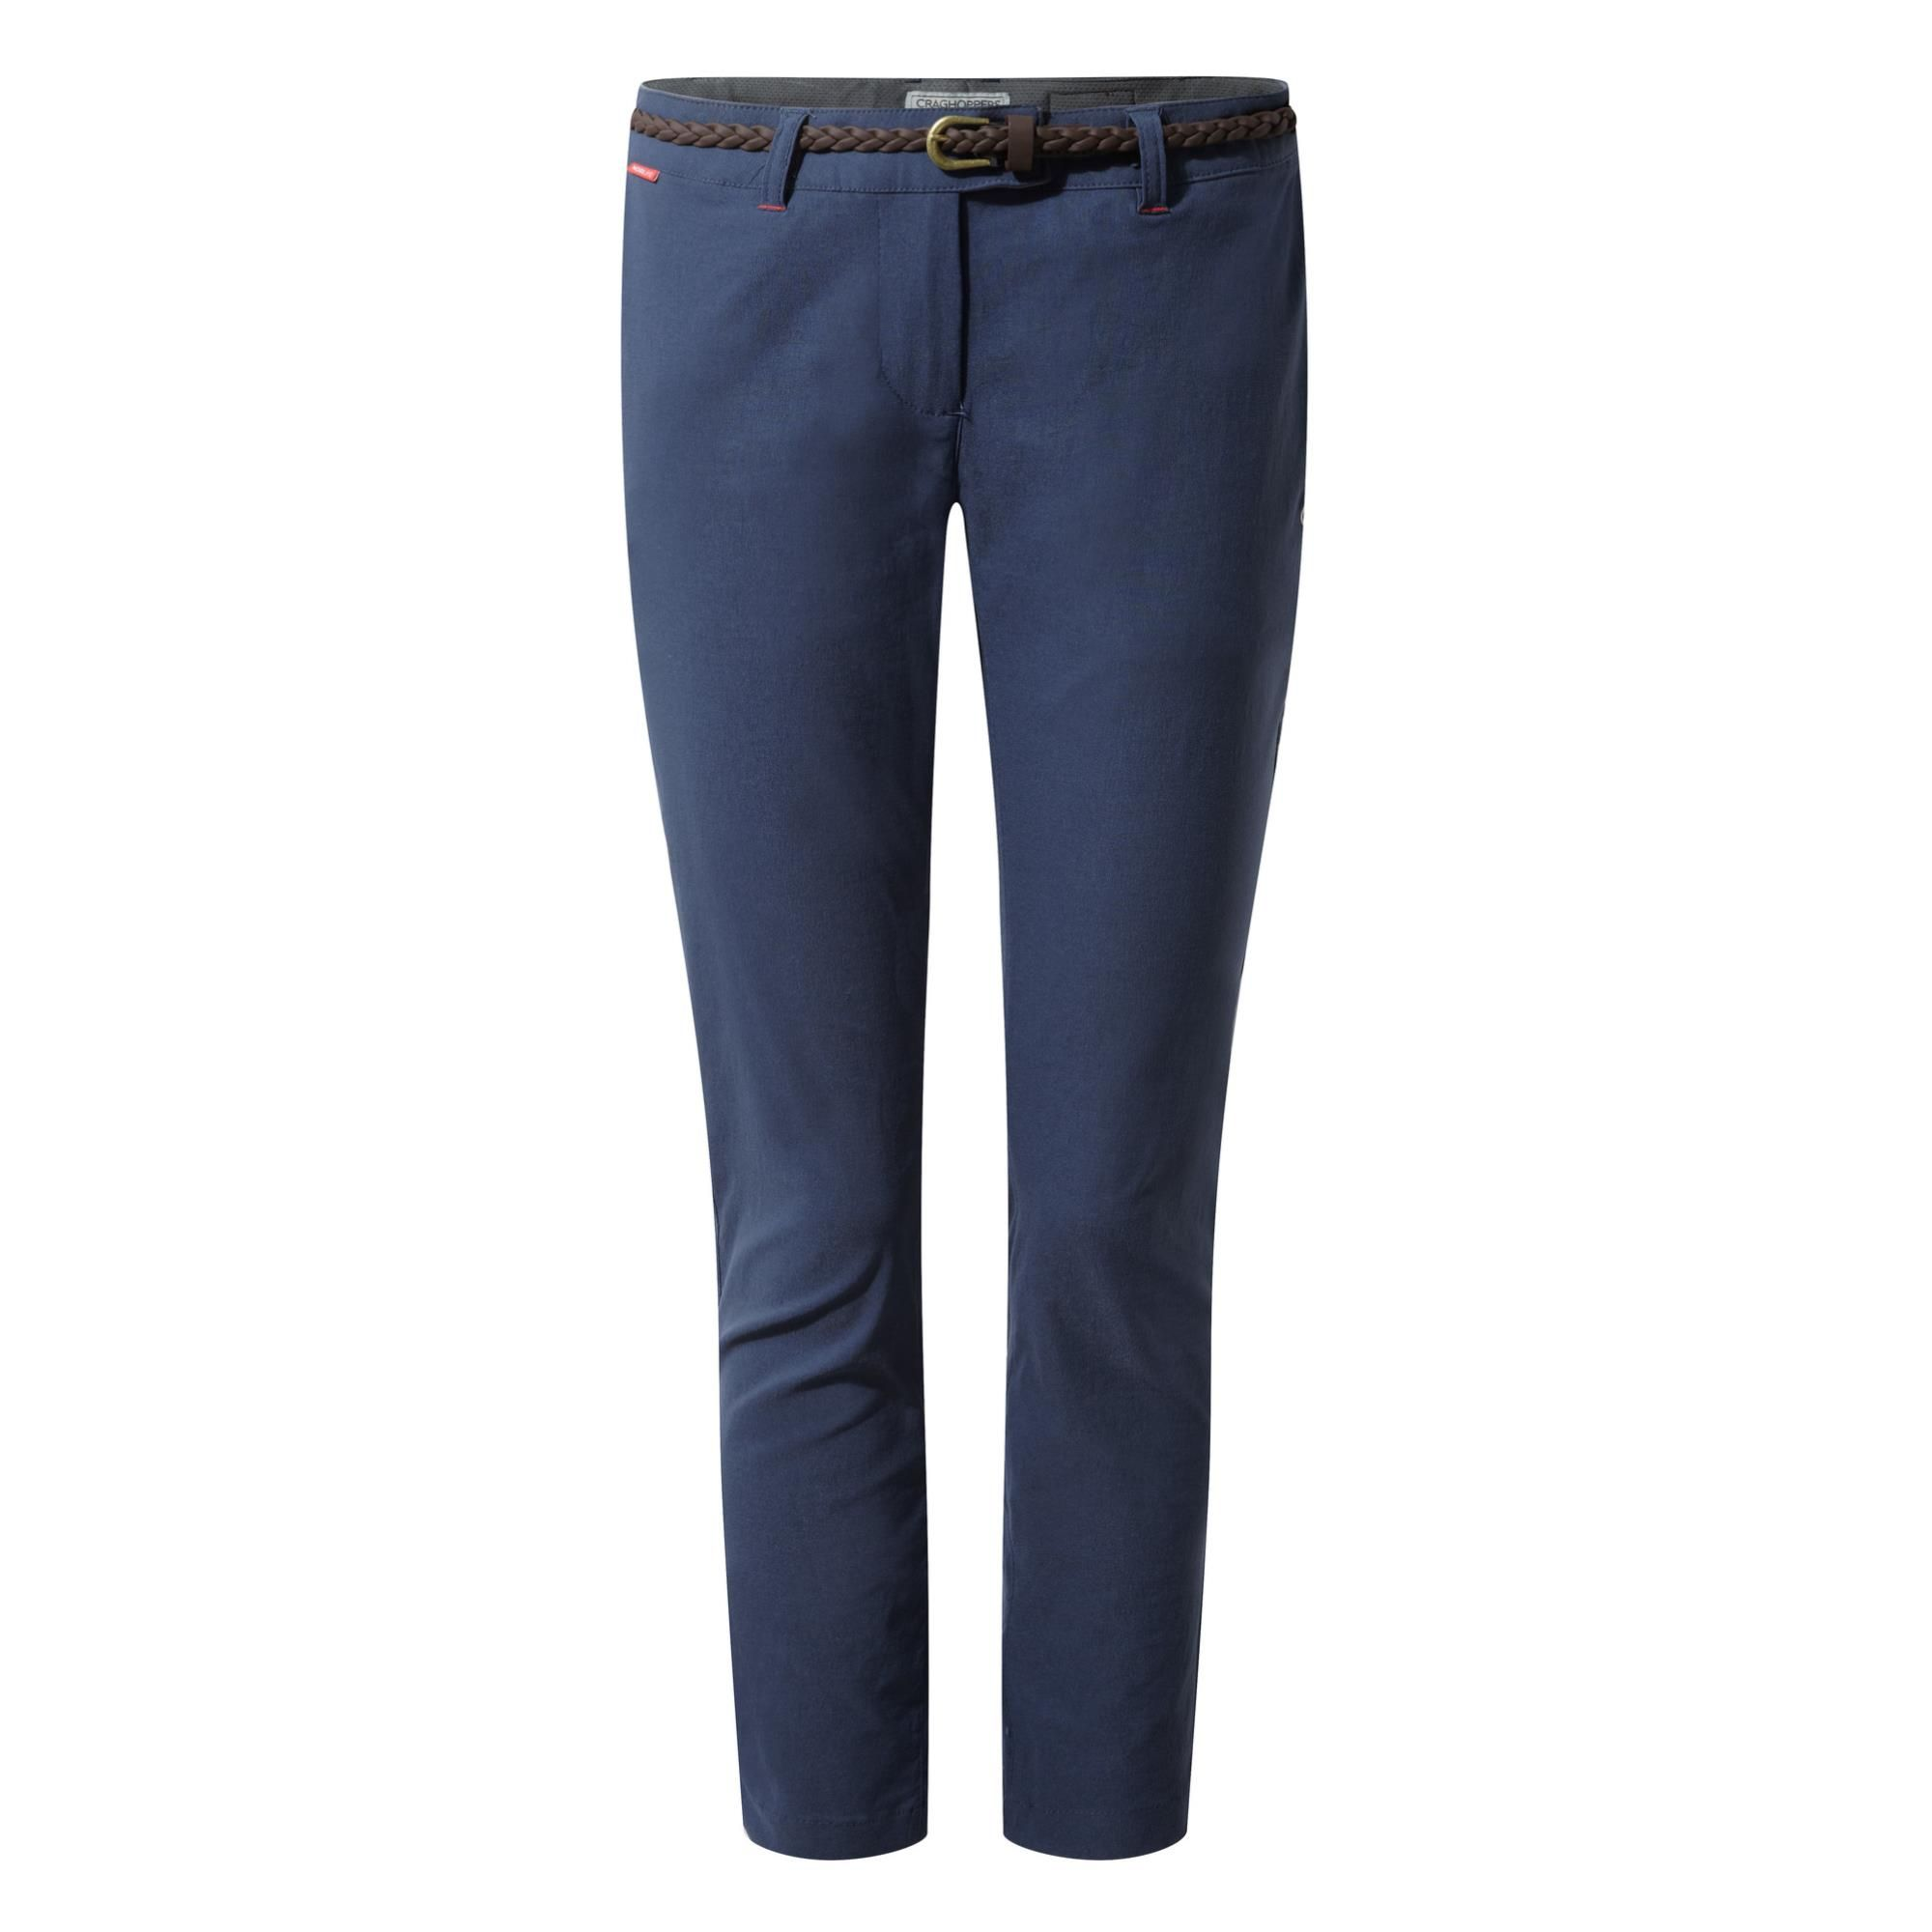 Doorout Angebote Craghoppers Nosilife Fleurie Hose blau Damen Gr. 36: Category: Outdoorbekleidung > Damen > Hosen Item…%#Quickberater%